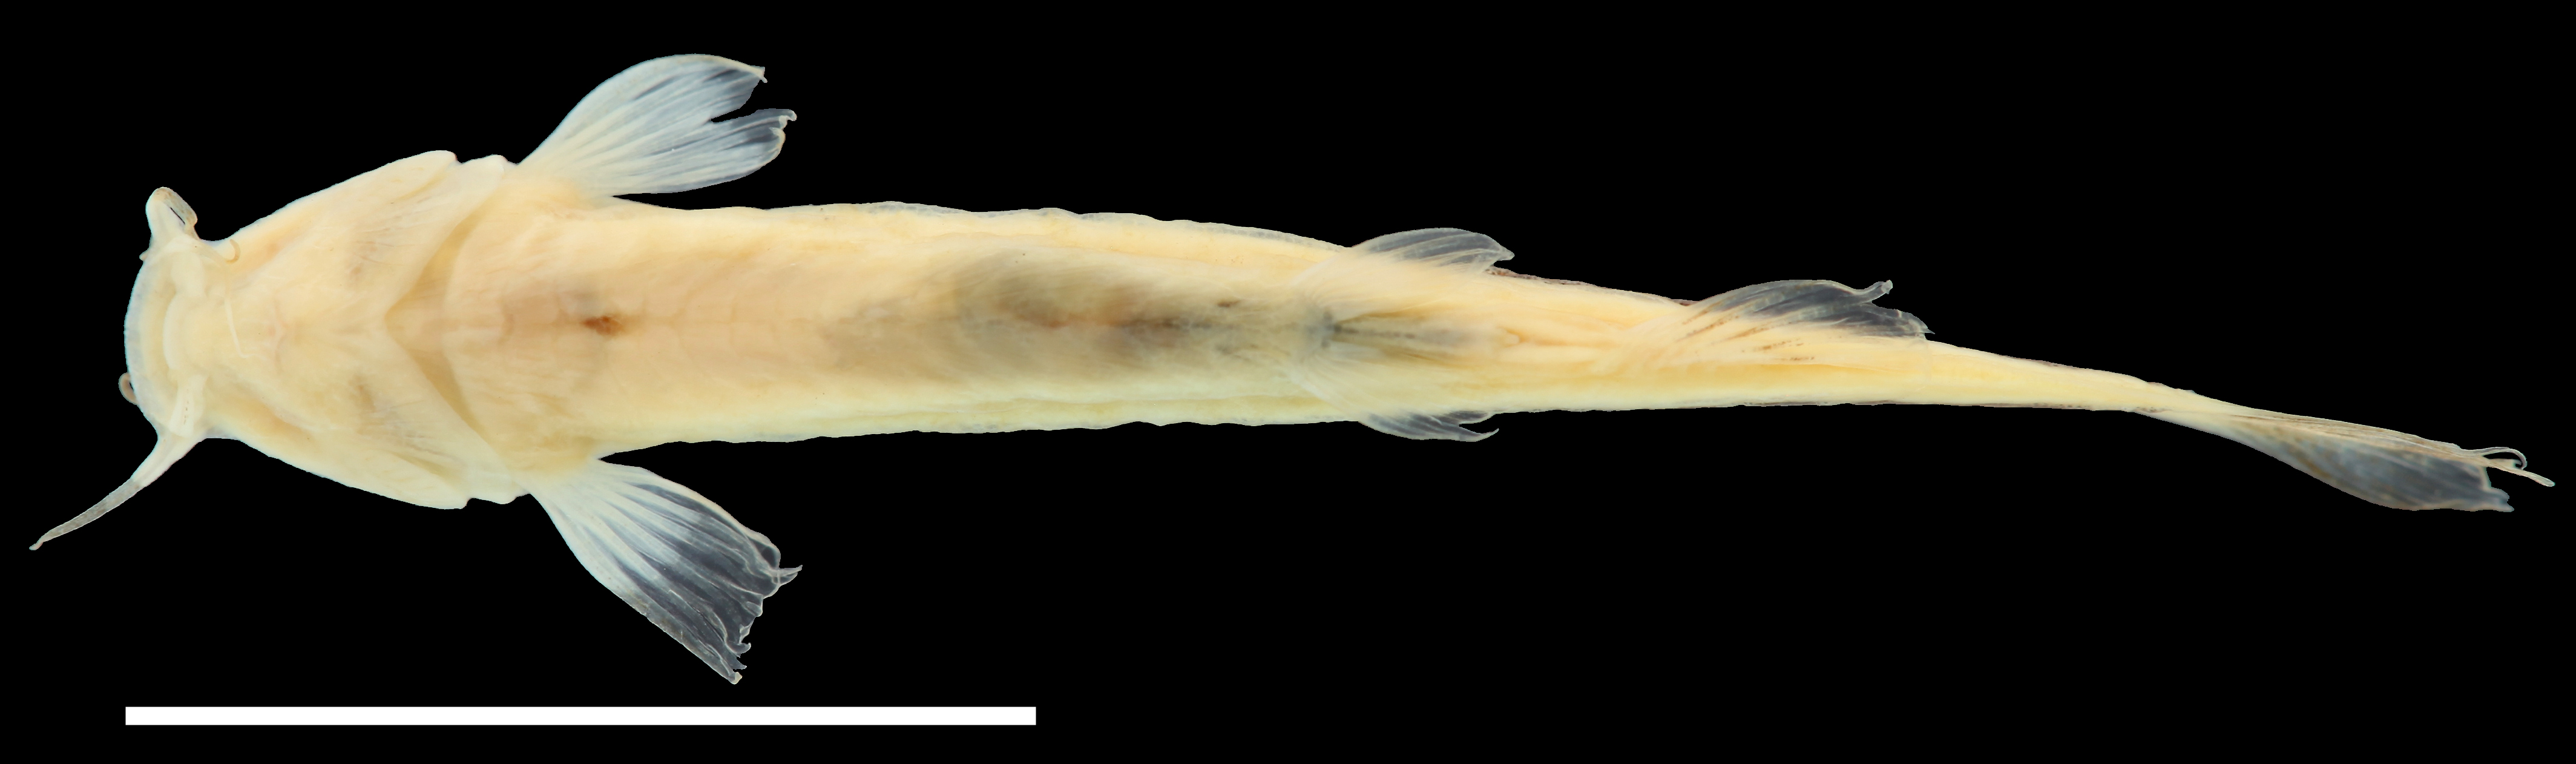 Paratype of <em>Trichomycterus maldonadoi</em>, IAvH-P-11533_Ventral, 22.7 mm SL (scale bar = 1 cm). Photograph by C. DoNascimiento